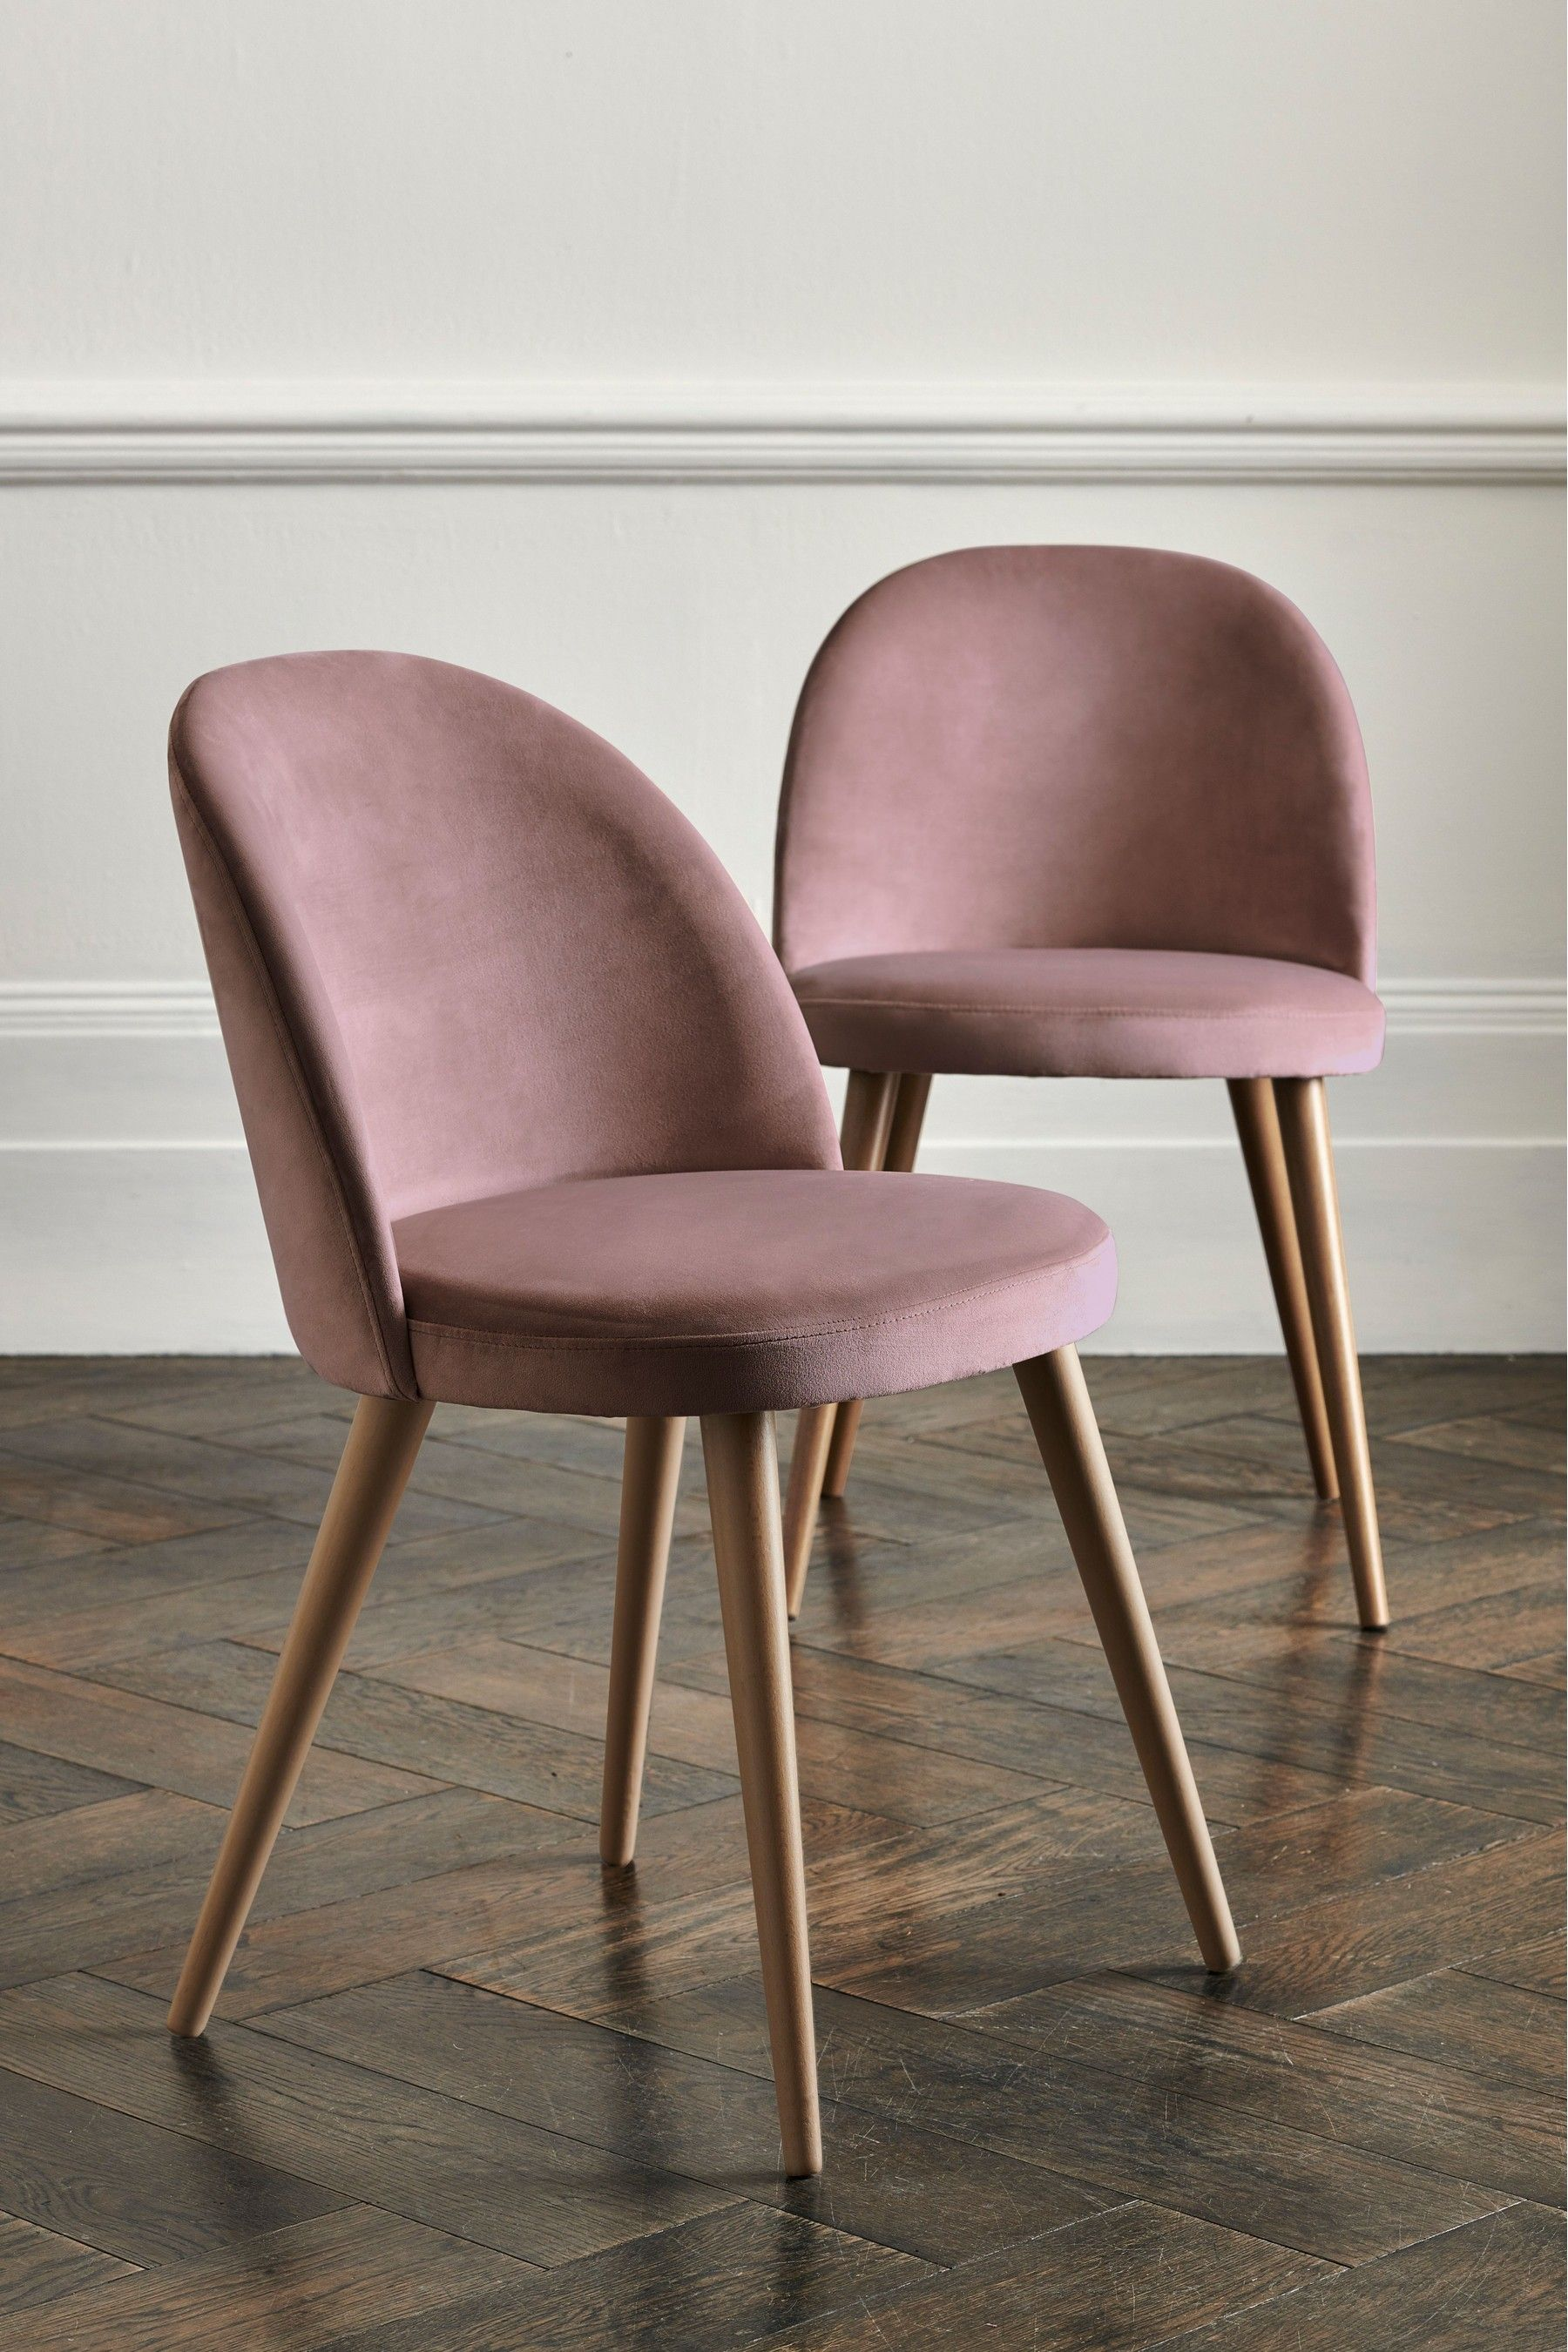 Next Set of 9 Zola Dining Chairs With Washed Legs - Pink in 9090